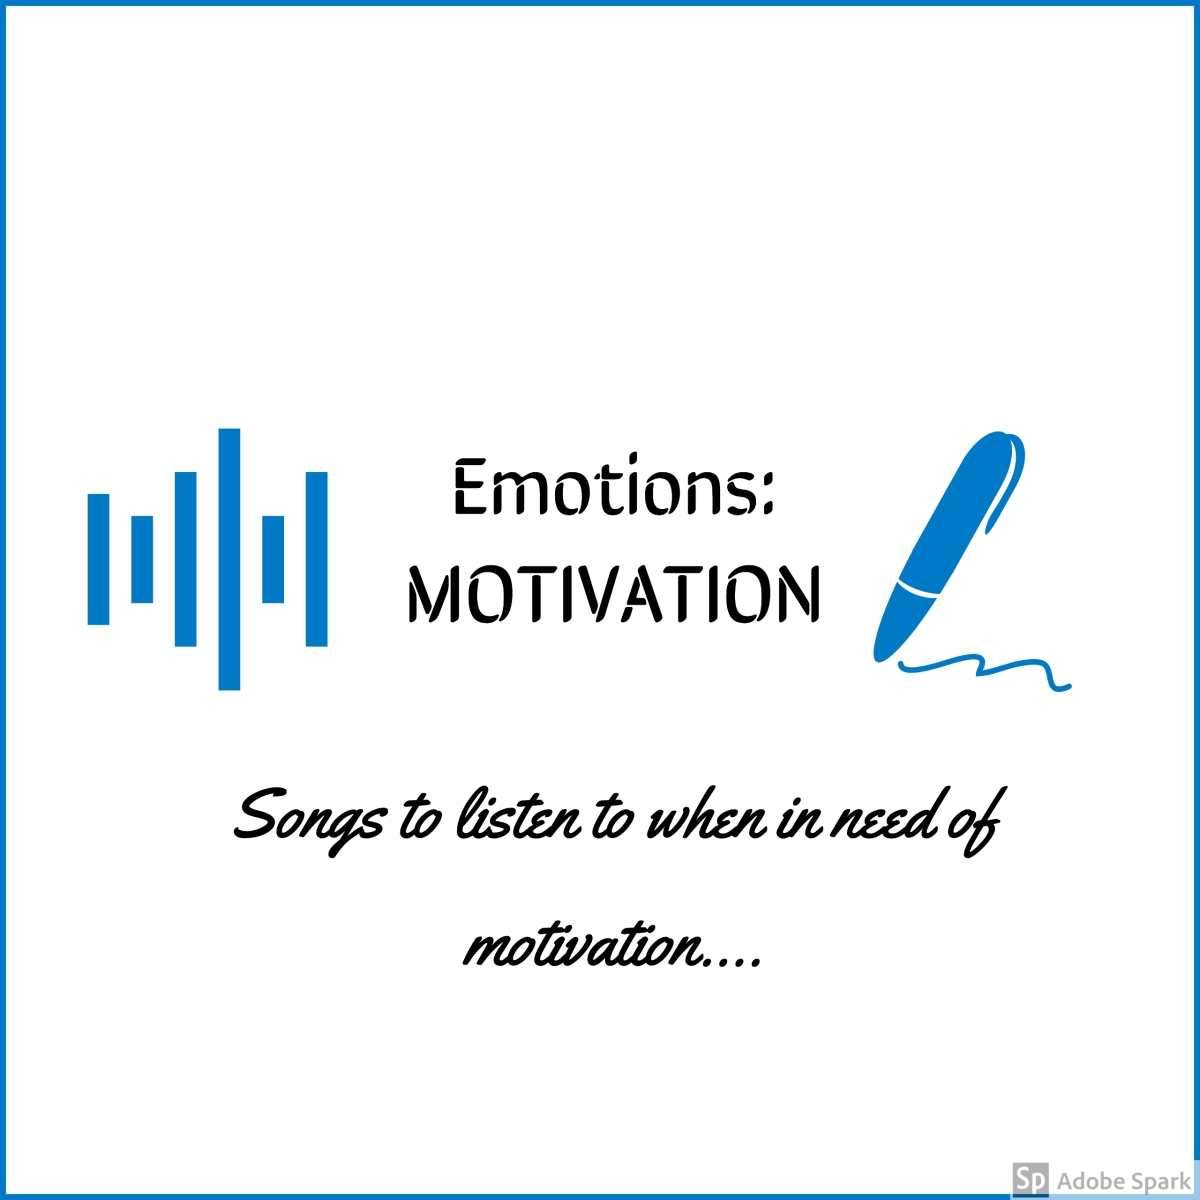 'Songs to listen to' when you're in need of…Motivation. (Volume 1)